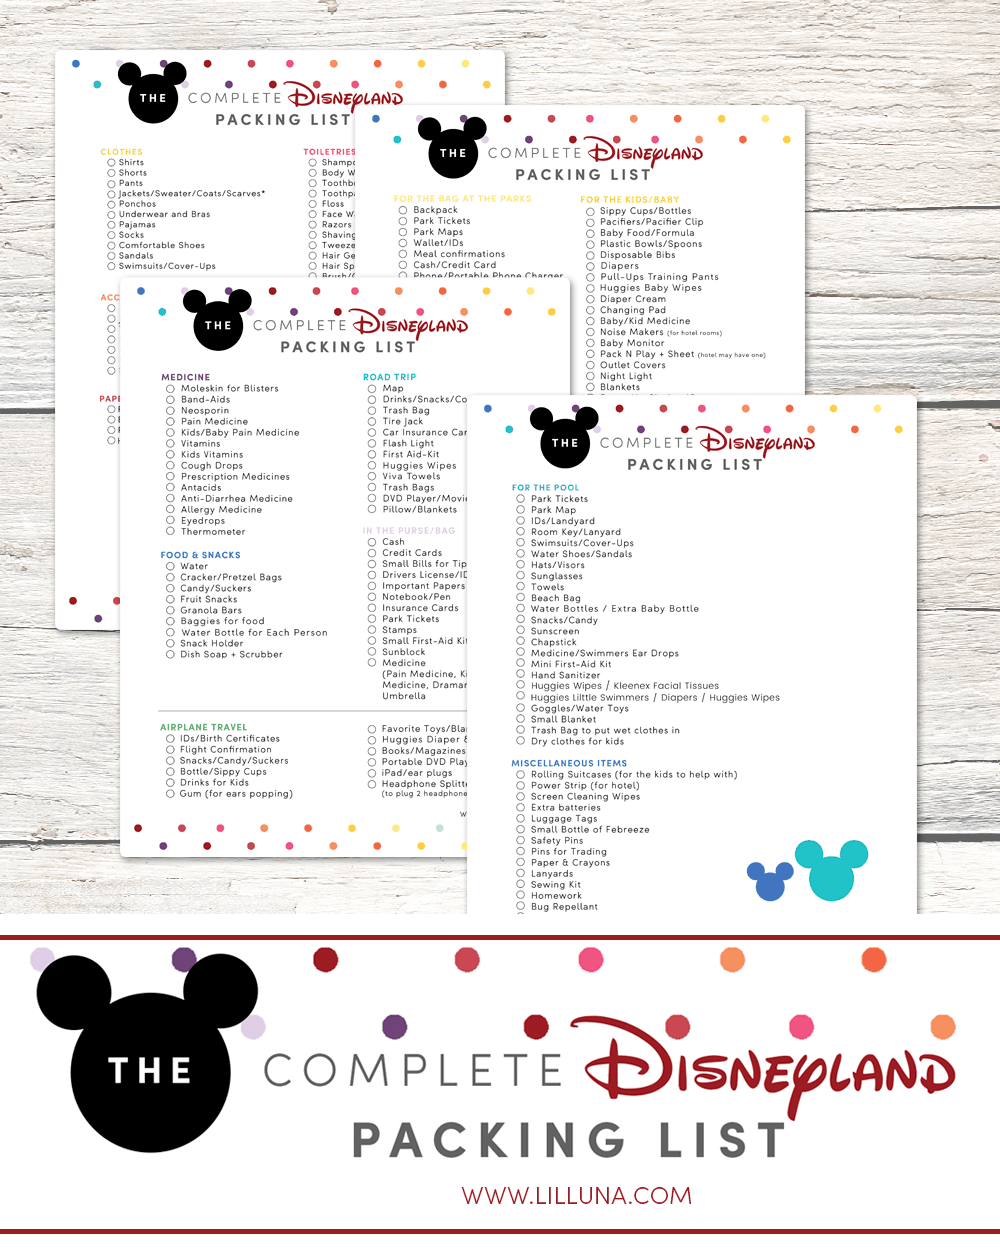 The COMPLETE Disneyland Packing List - all you need to pack for a trip to the Happiest Place on Earth!